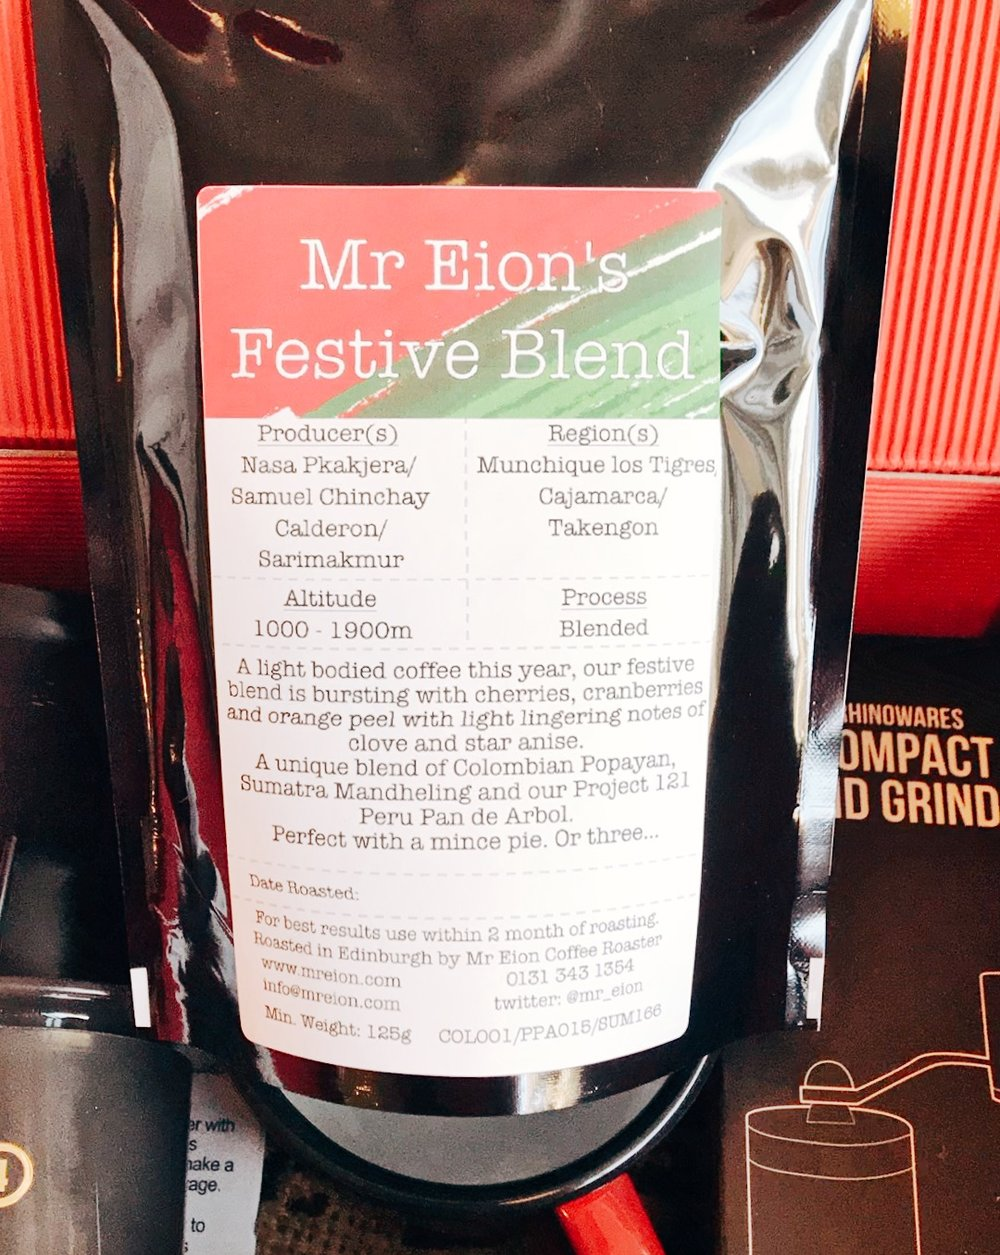 Mr Eion's festive coffee blend